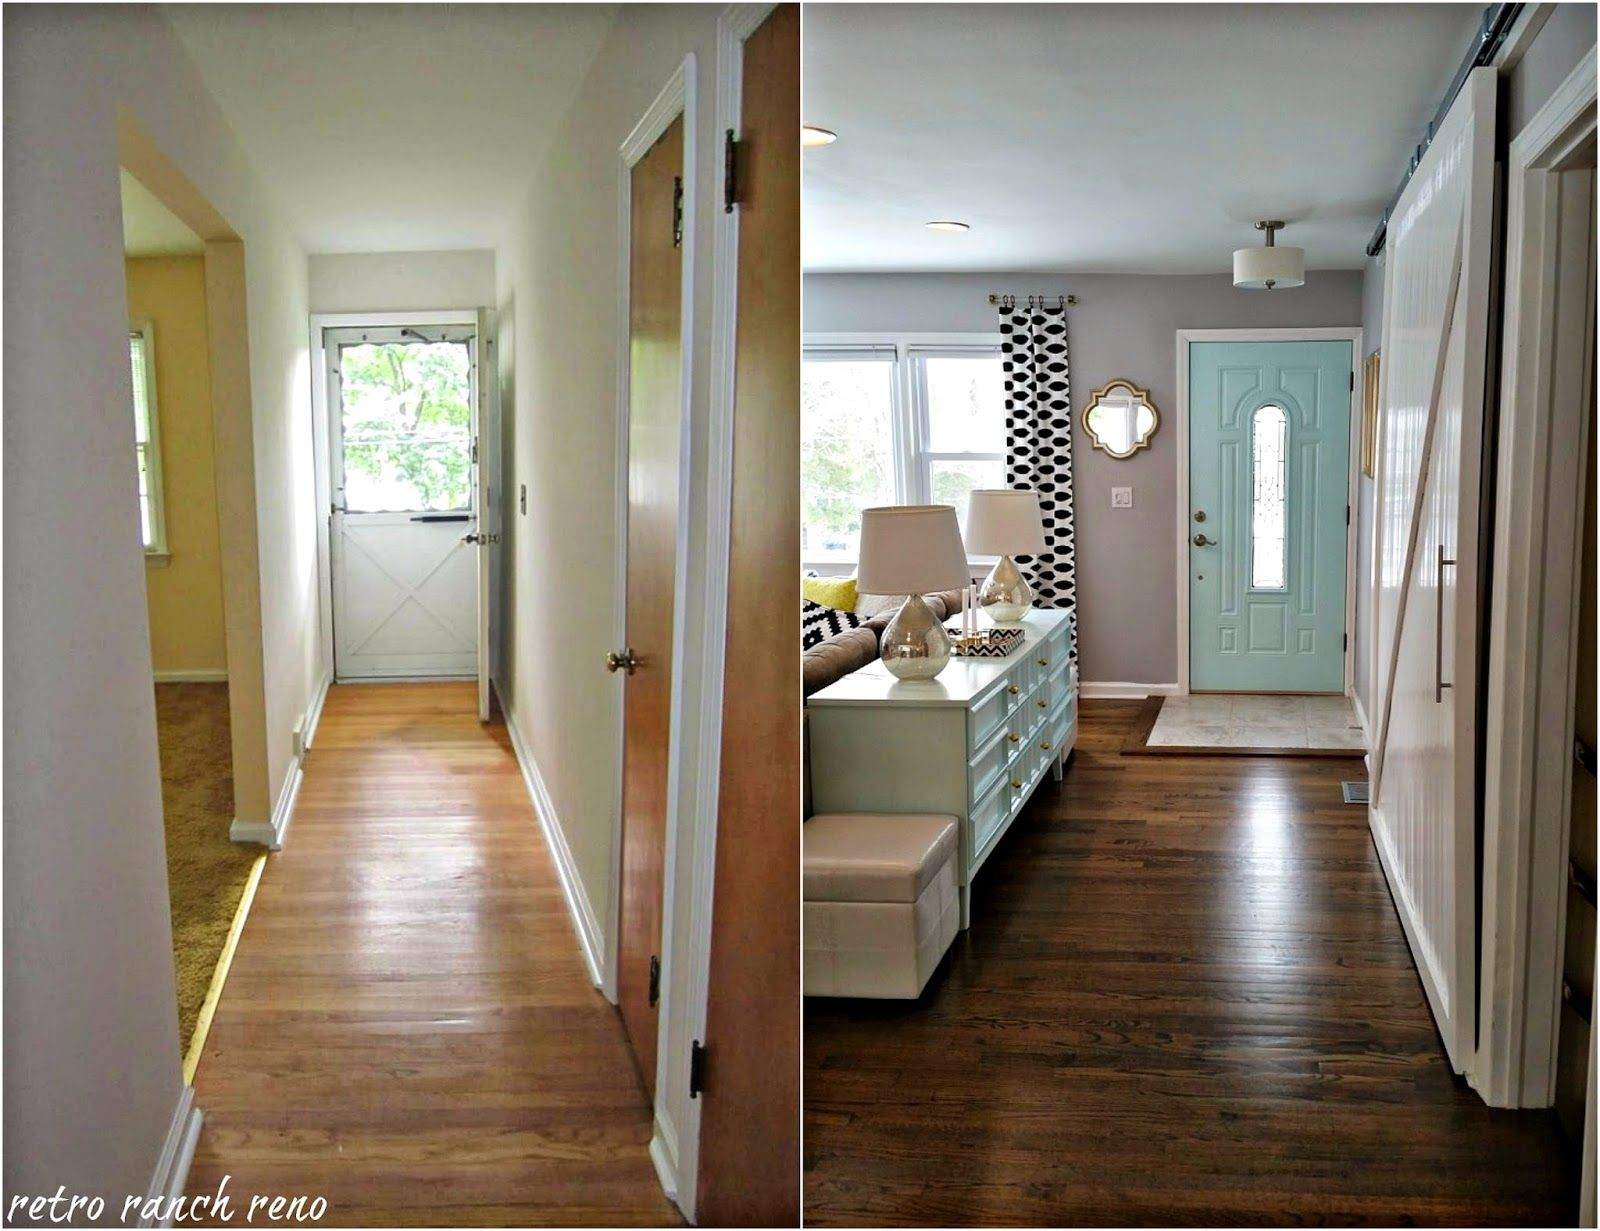 Living Room Renovation Before And After retro ranch reno: our rancher: before & after - the entrance